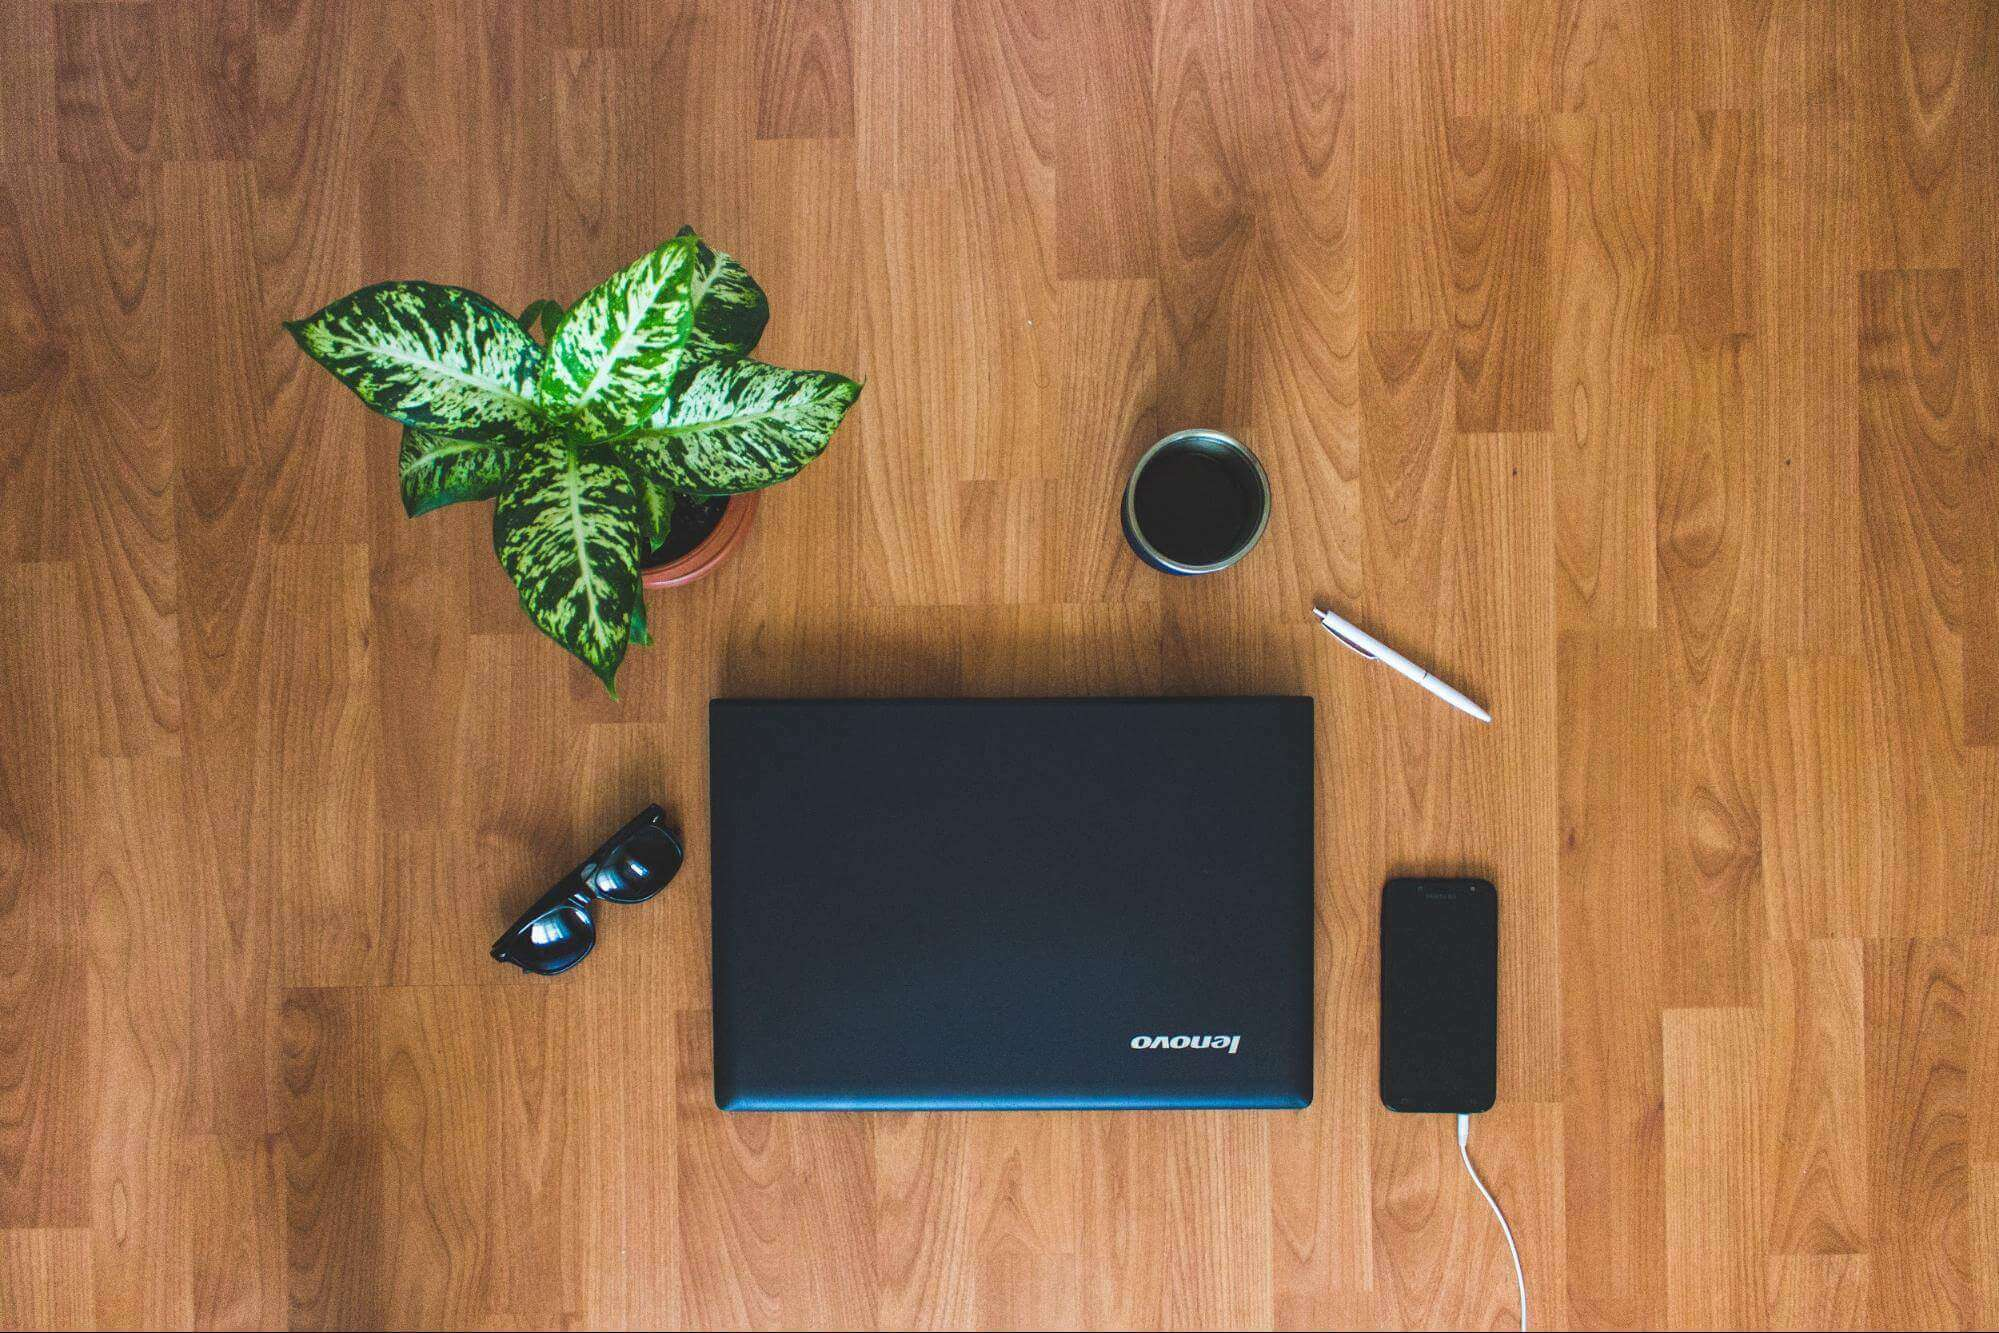 Why Lenovo is the Best Laptop Brand [And the 5 Best Laptops